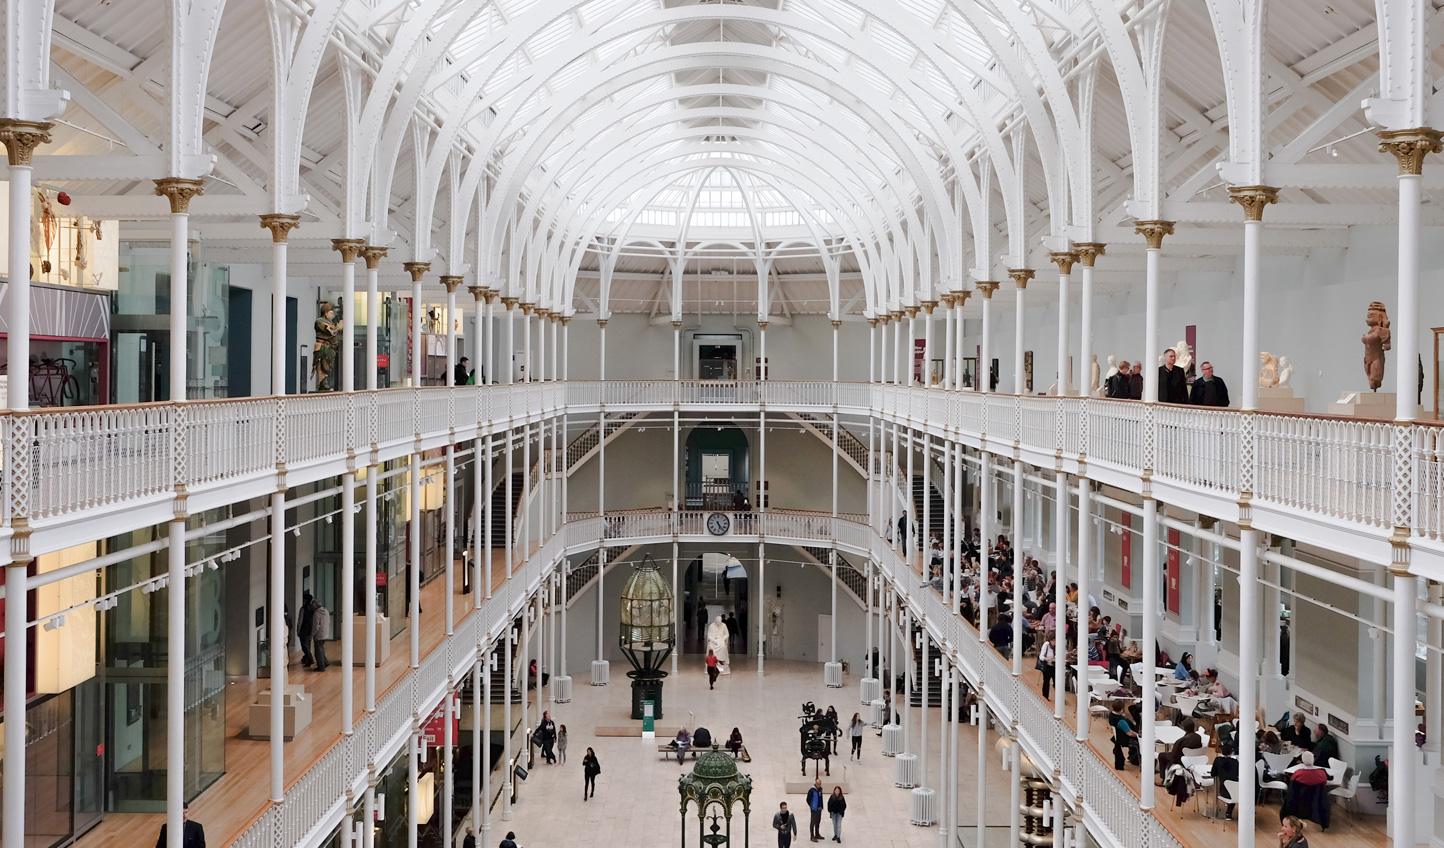 Swing by Edinburgh's fascinating museums